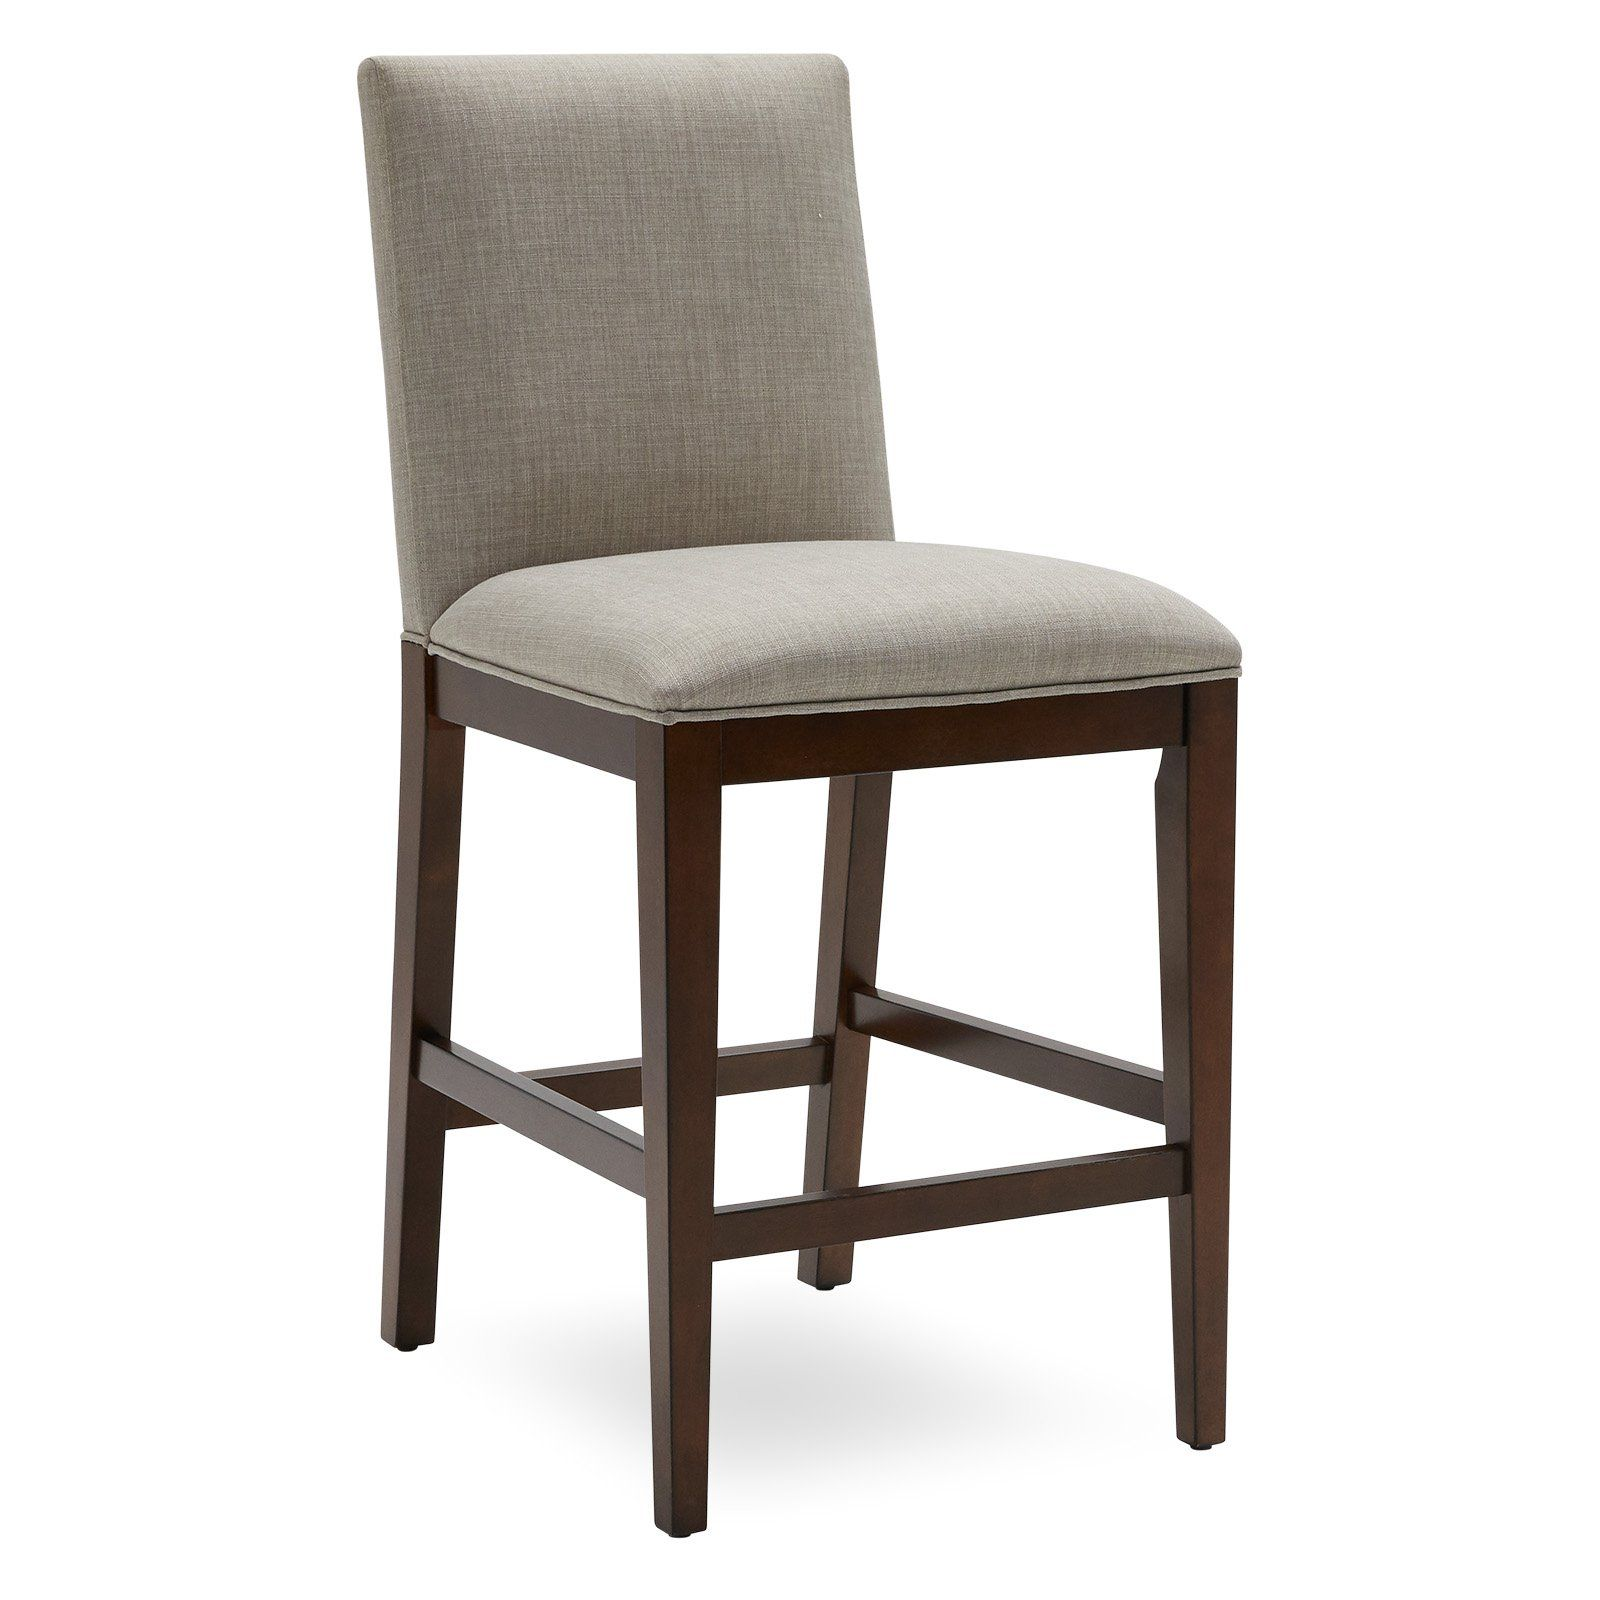 Prime Belham Living Abbott 26 In Parsons Counter Stool Charcoal Machost Co Dining Chair Design Ideas Machostcouk